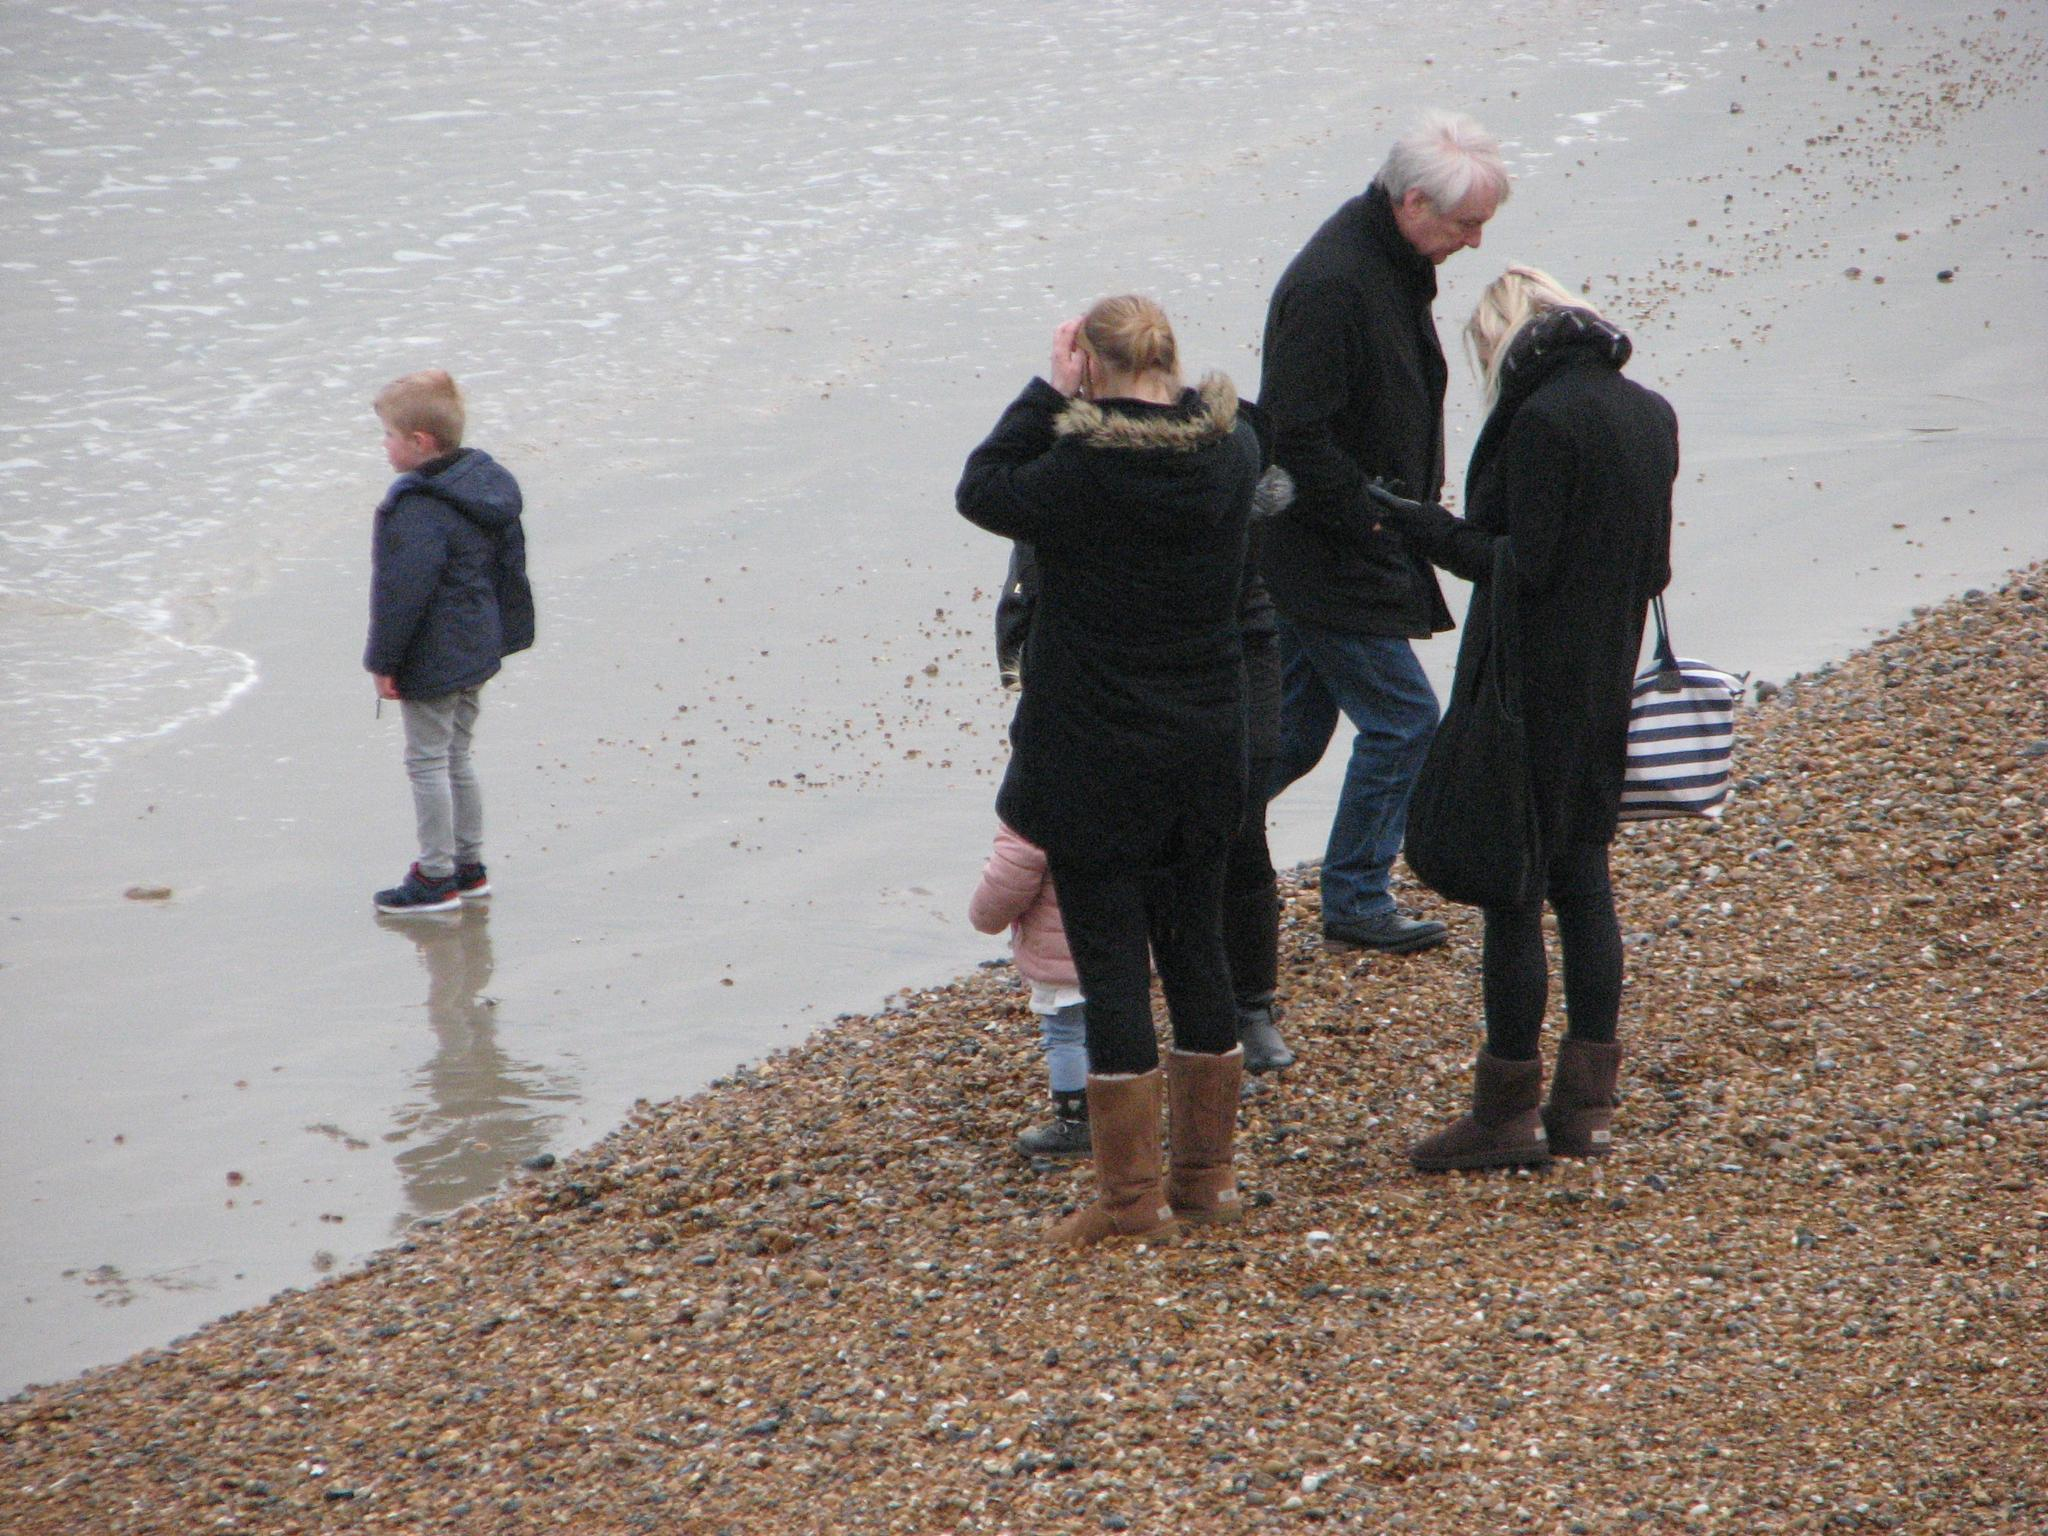 FAMILY DAY BY THE SEA by nigel.seldon.1